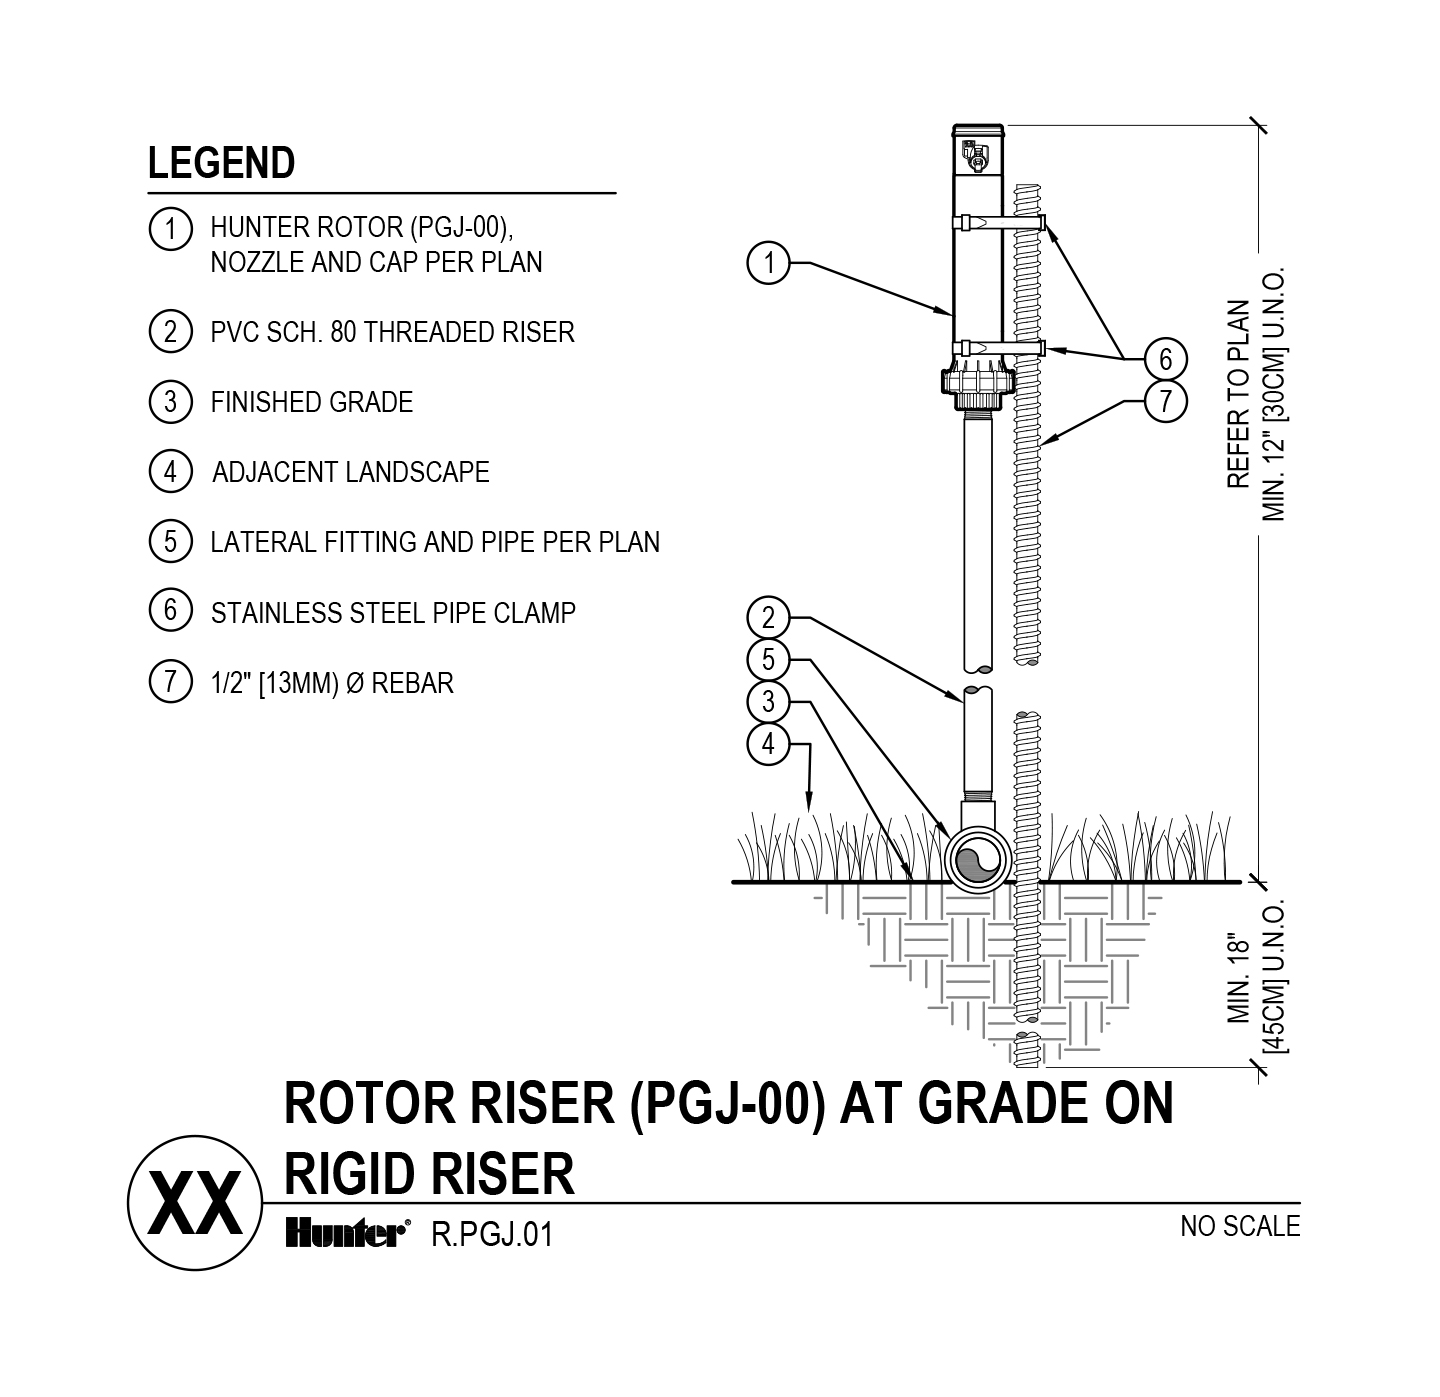 CAD - PGJ-00 On Grade with rigid riser